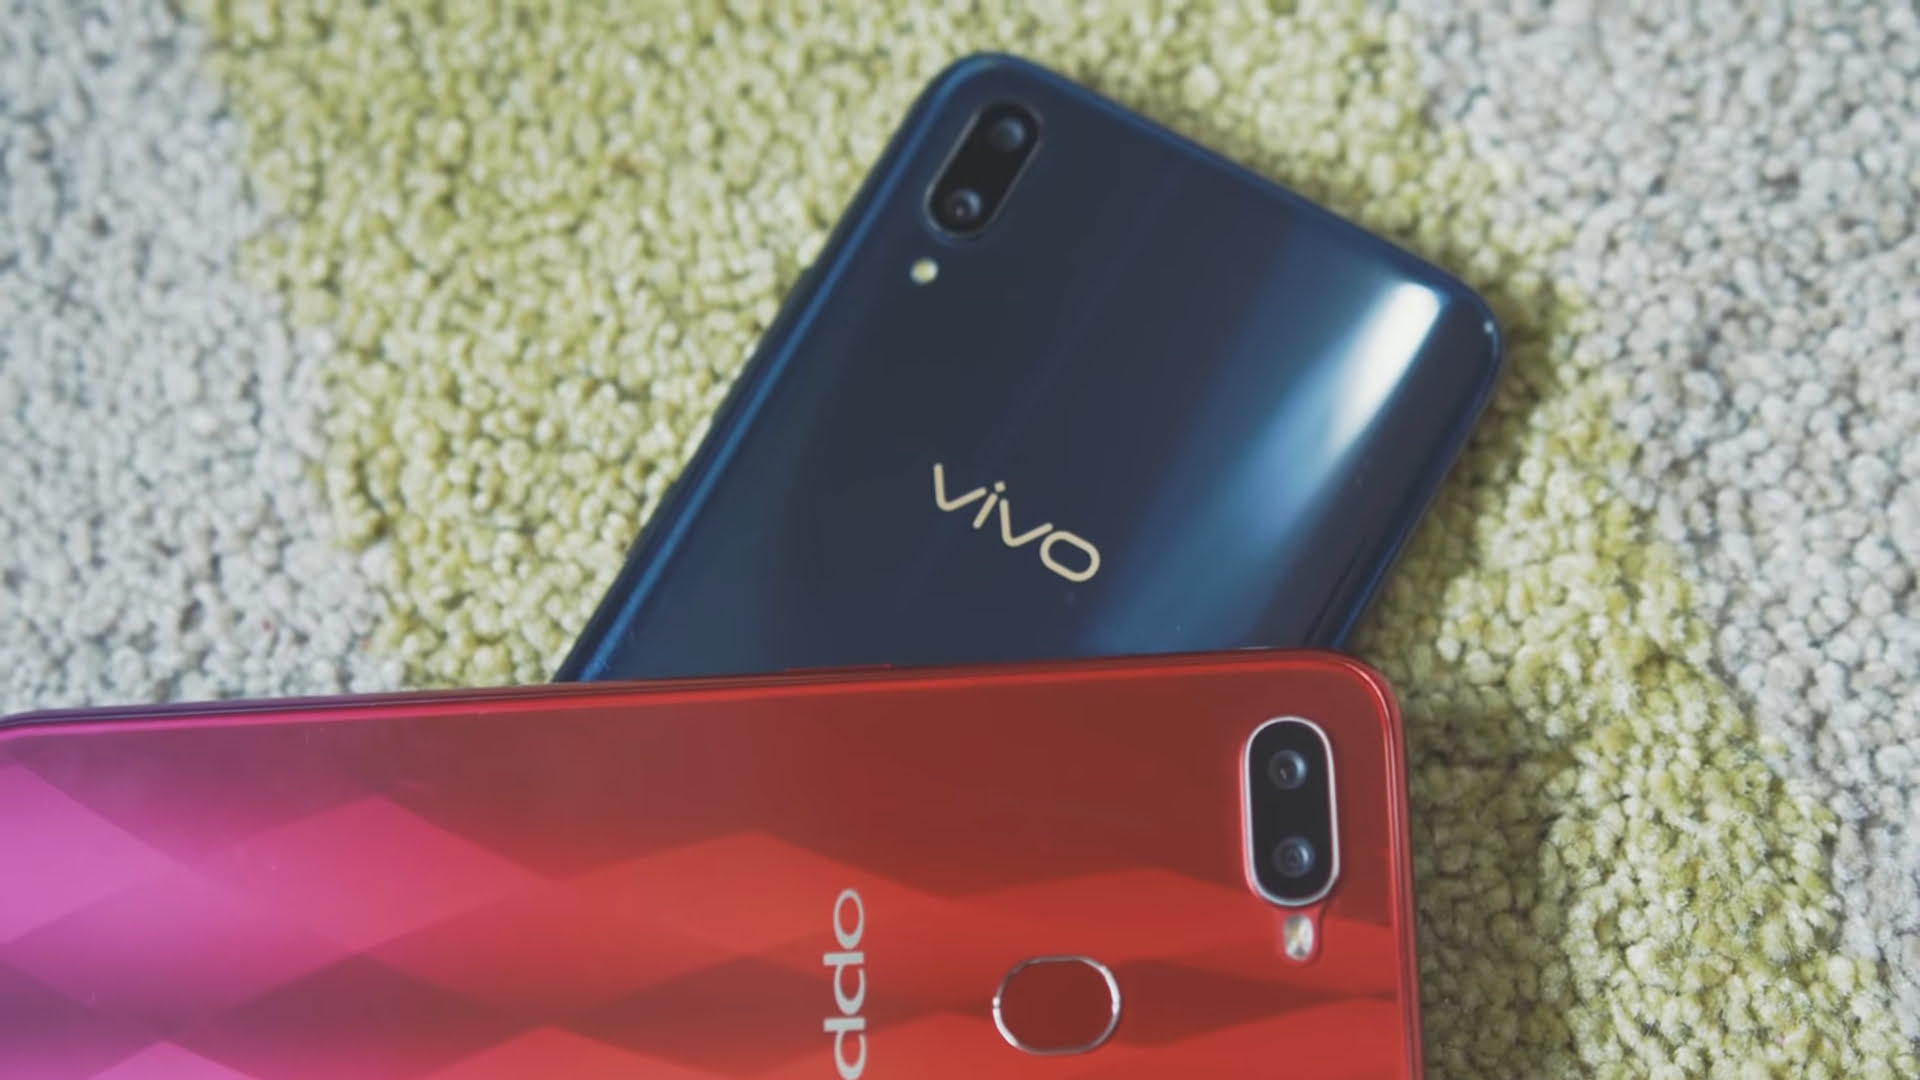 Vivo V11 with Halo Fullview Display is launching today - TechEngage